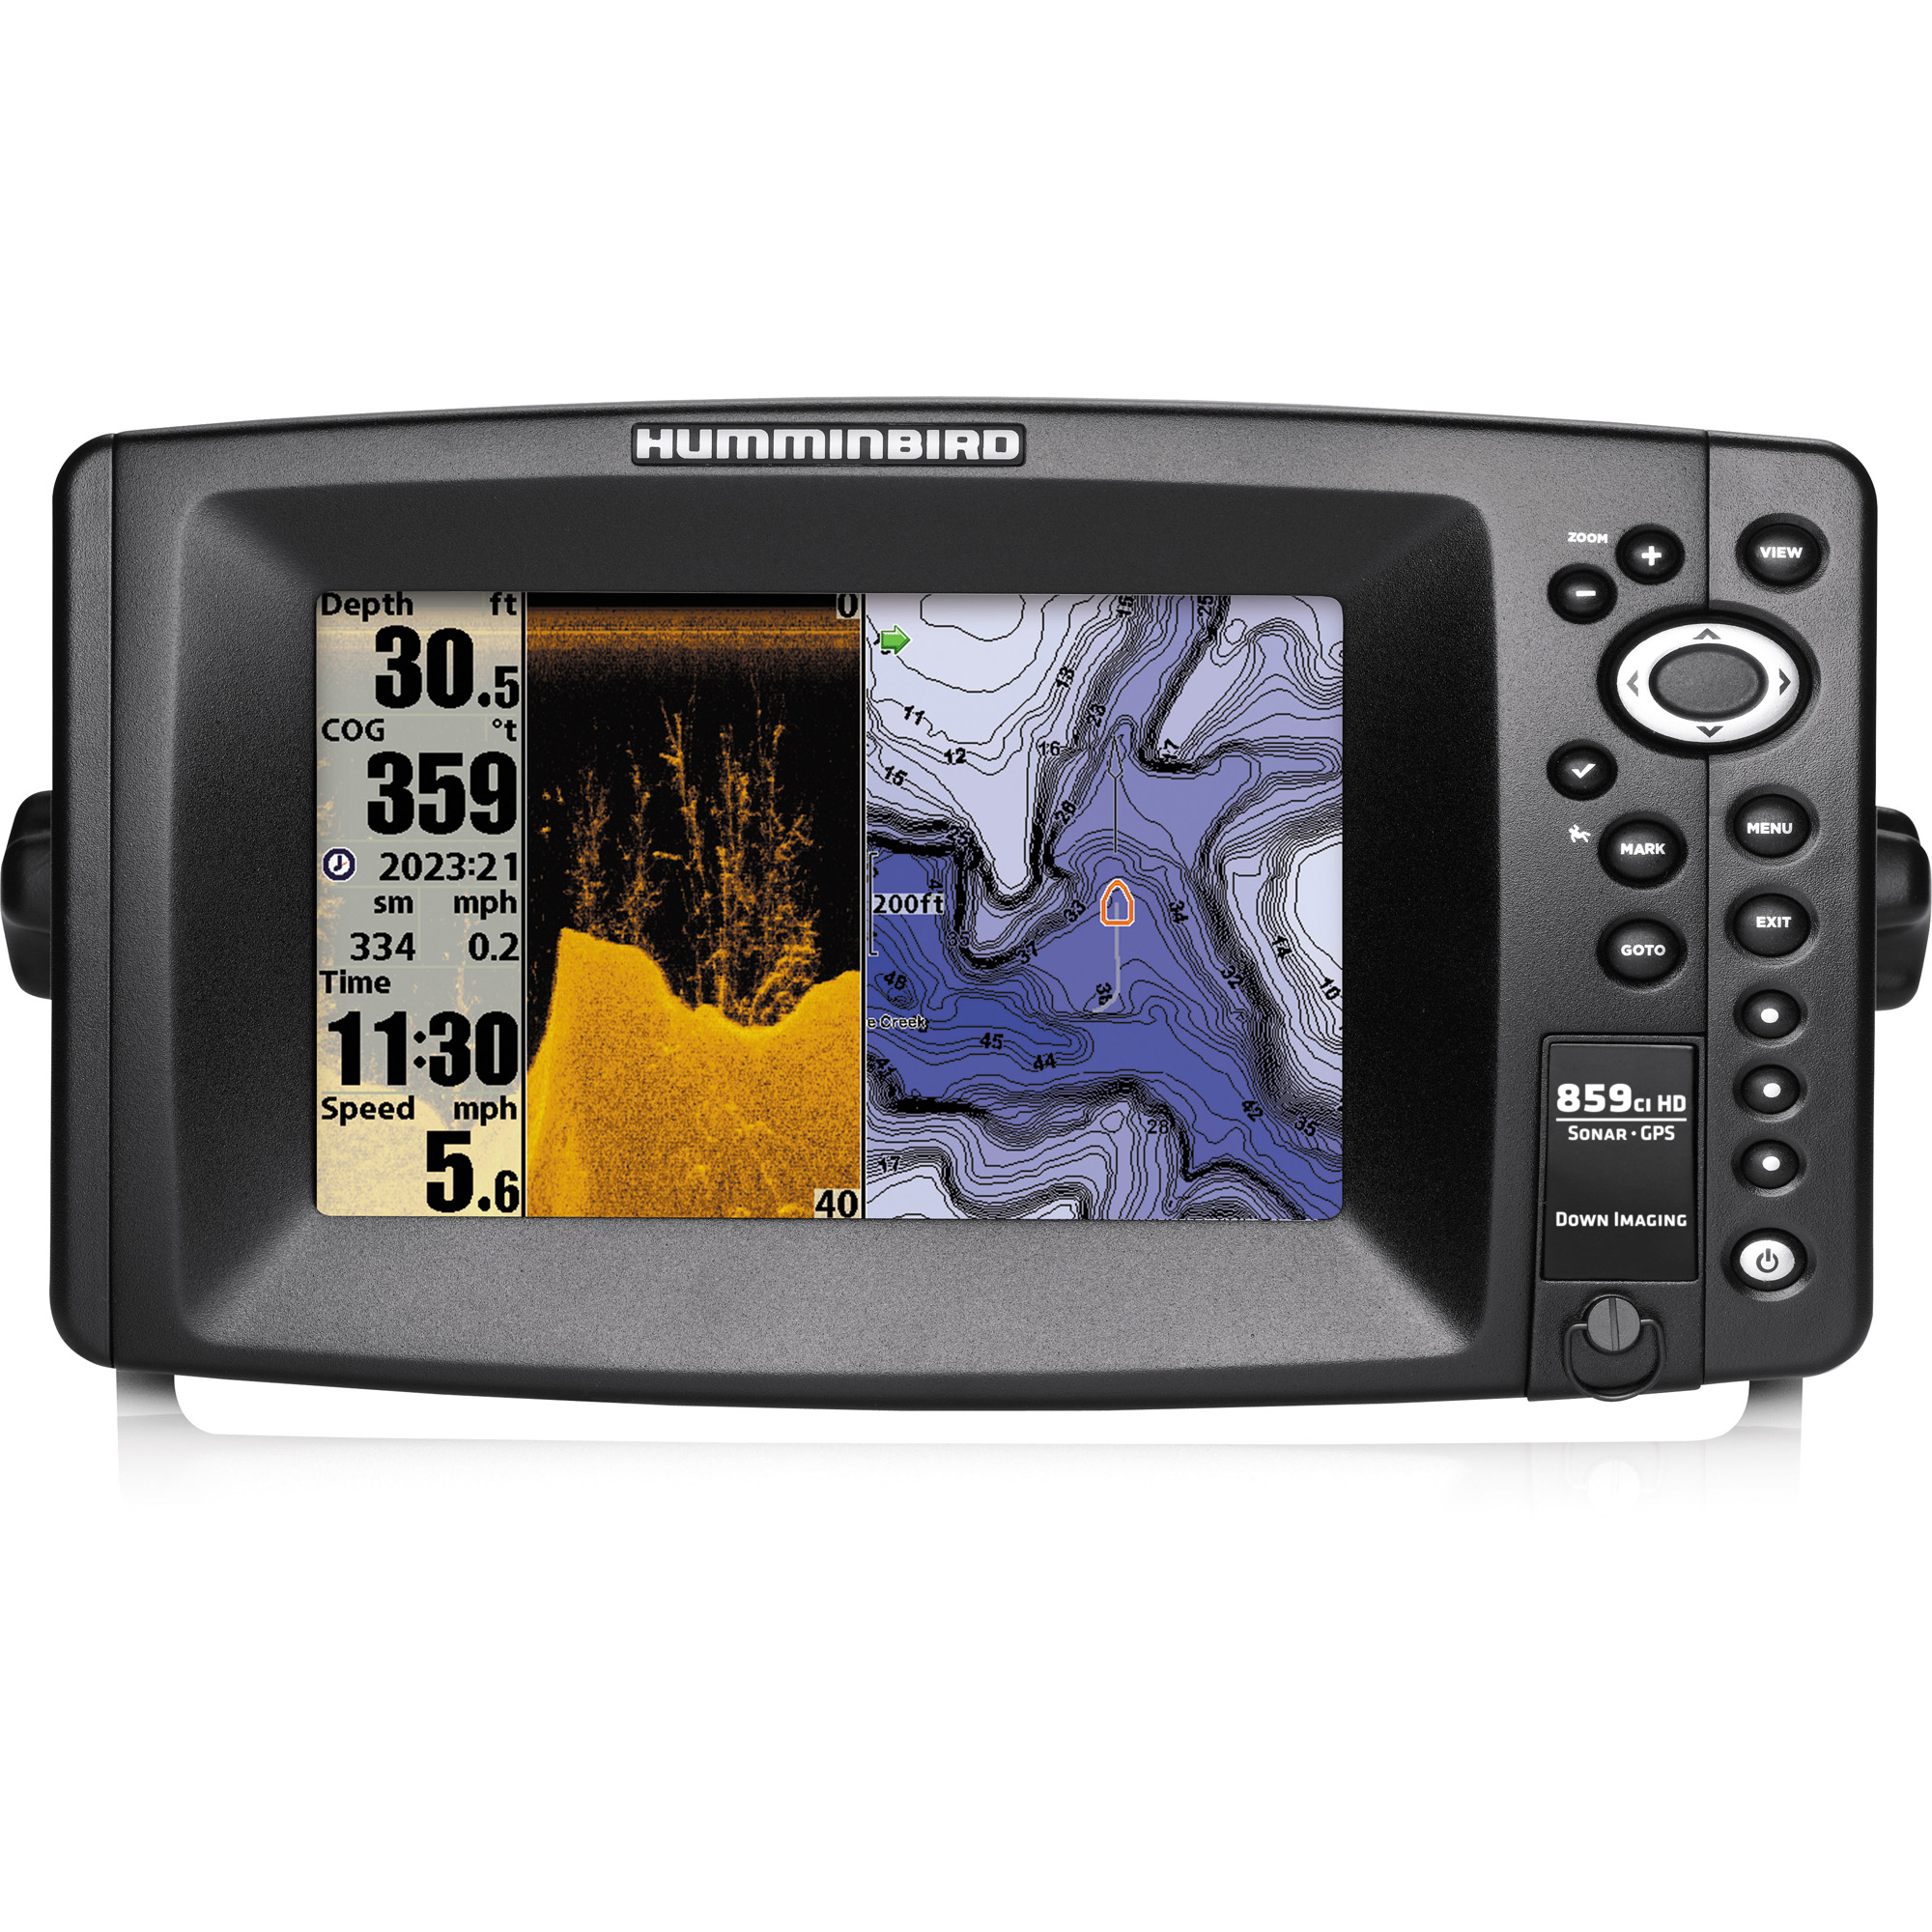 Humminbird 859ci HD DI Combo Locator